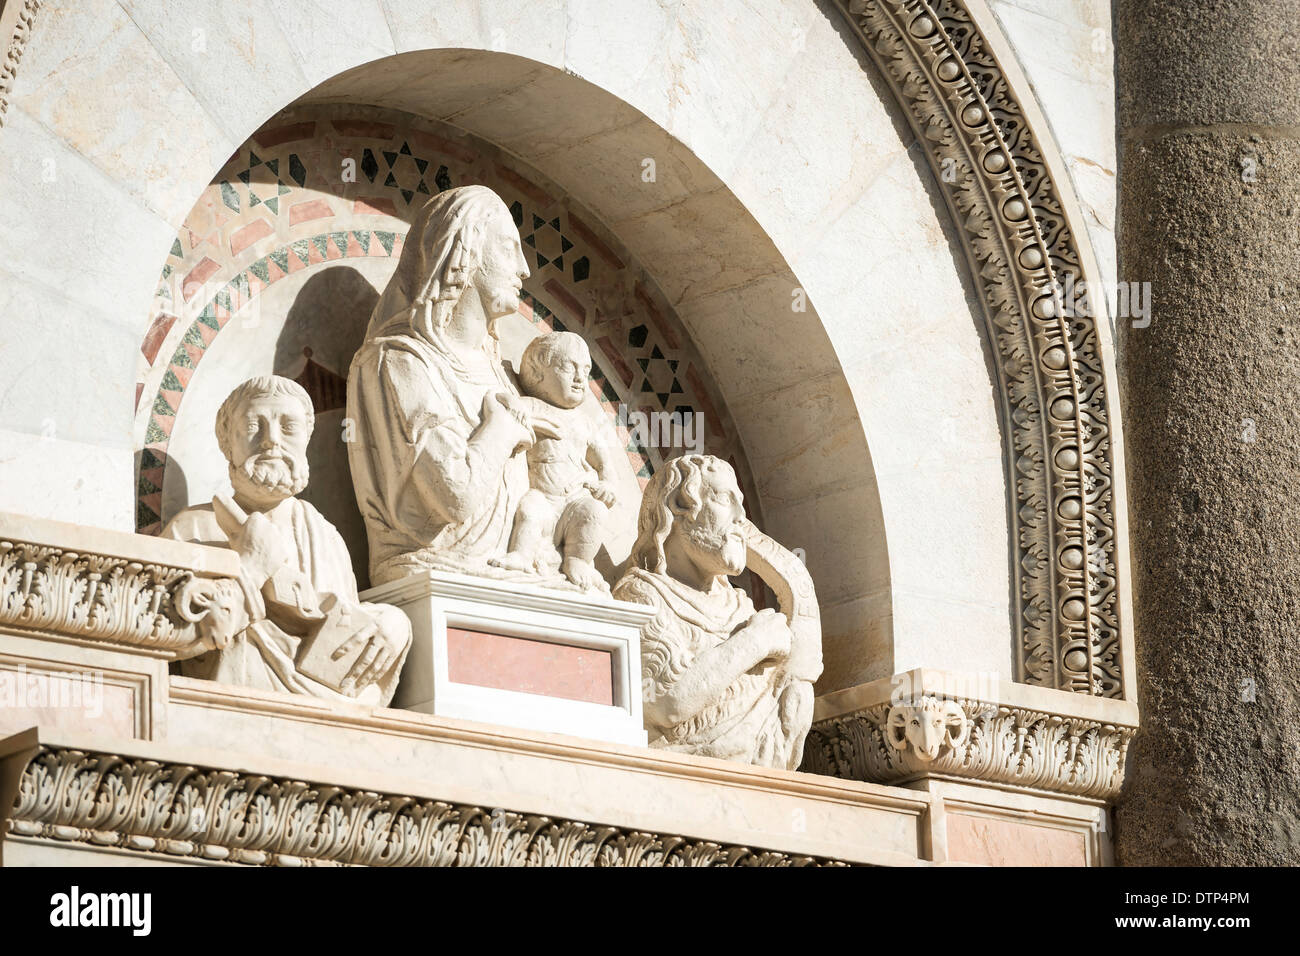 Statuary on the Leaning Tower in Pisa, Italy, Tuscany - Stock Image